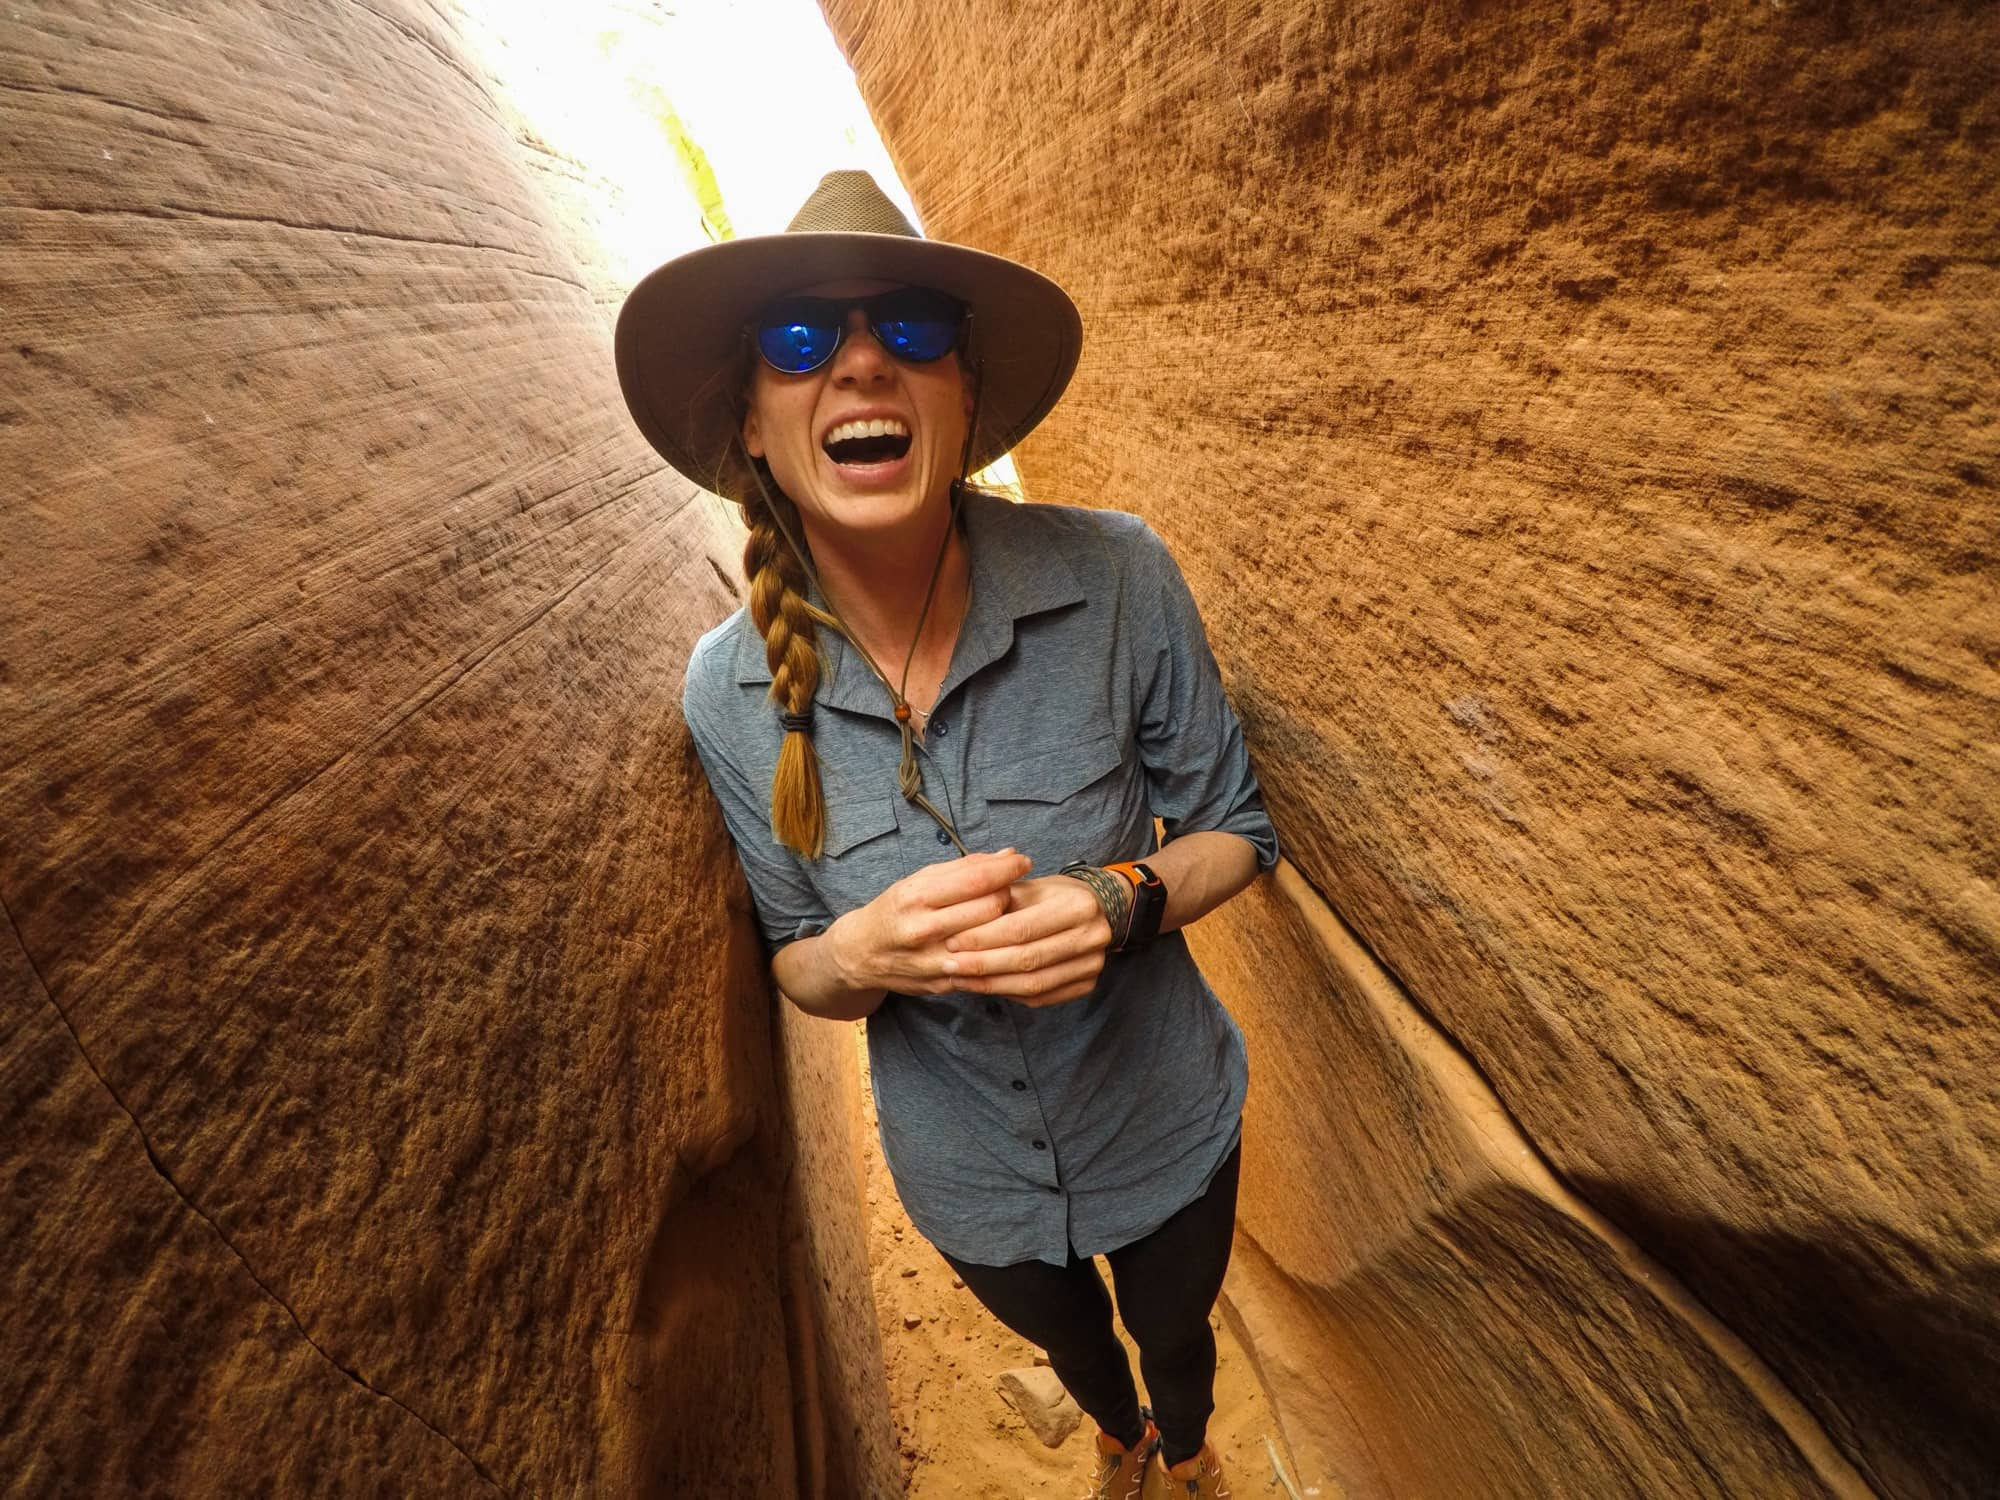 Camera Pointers with Adventure Photographer Kat Carney